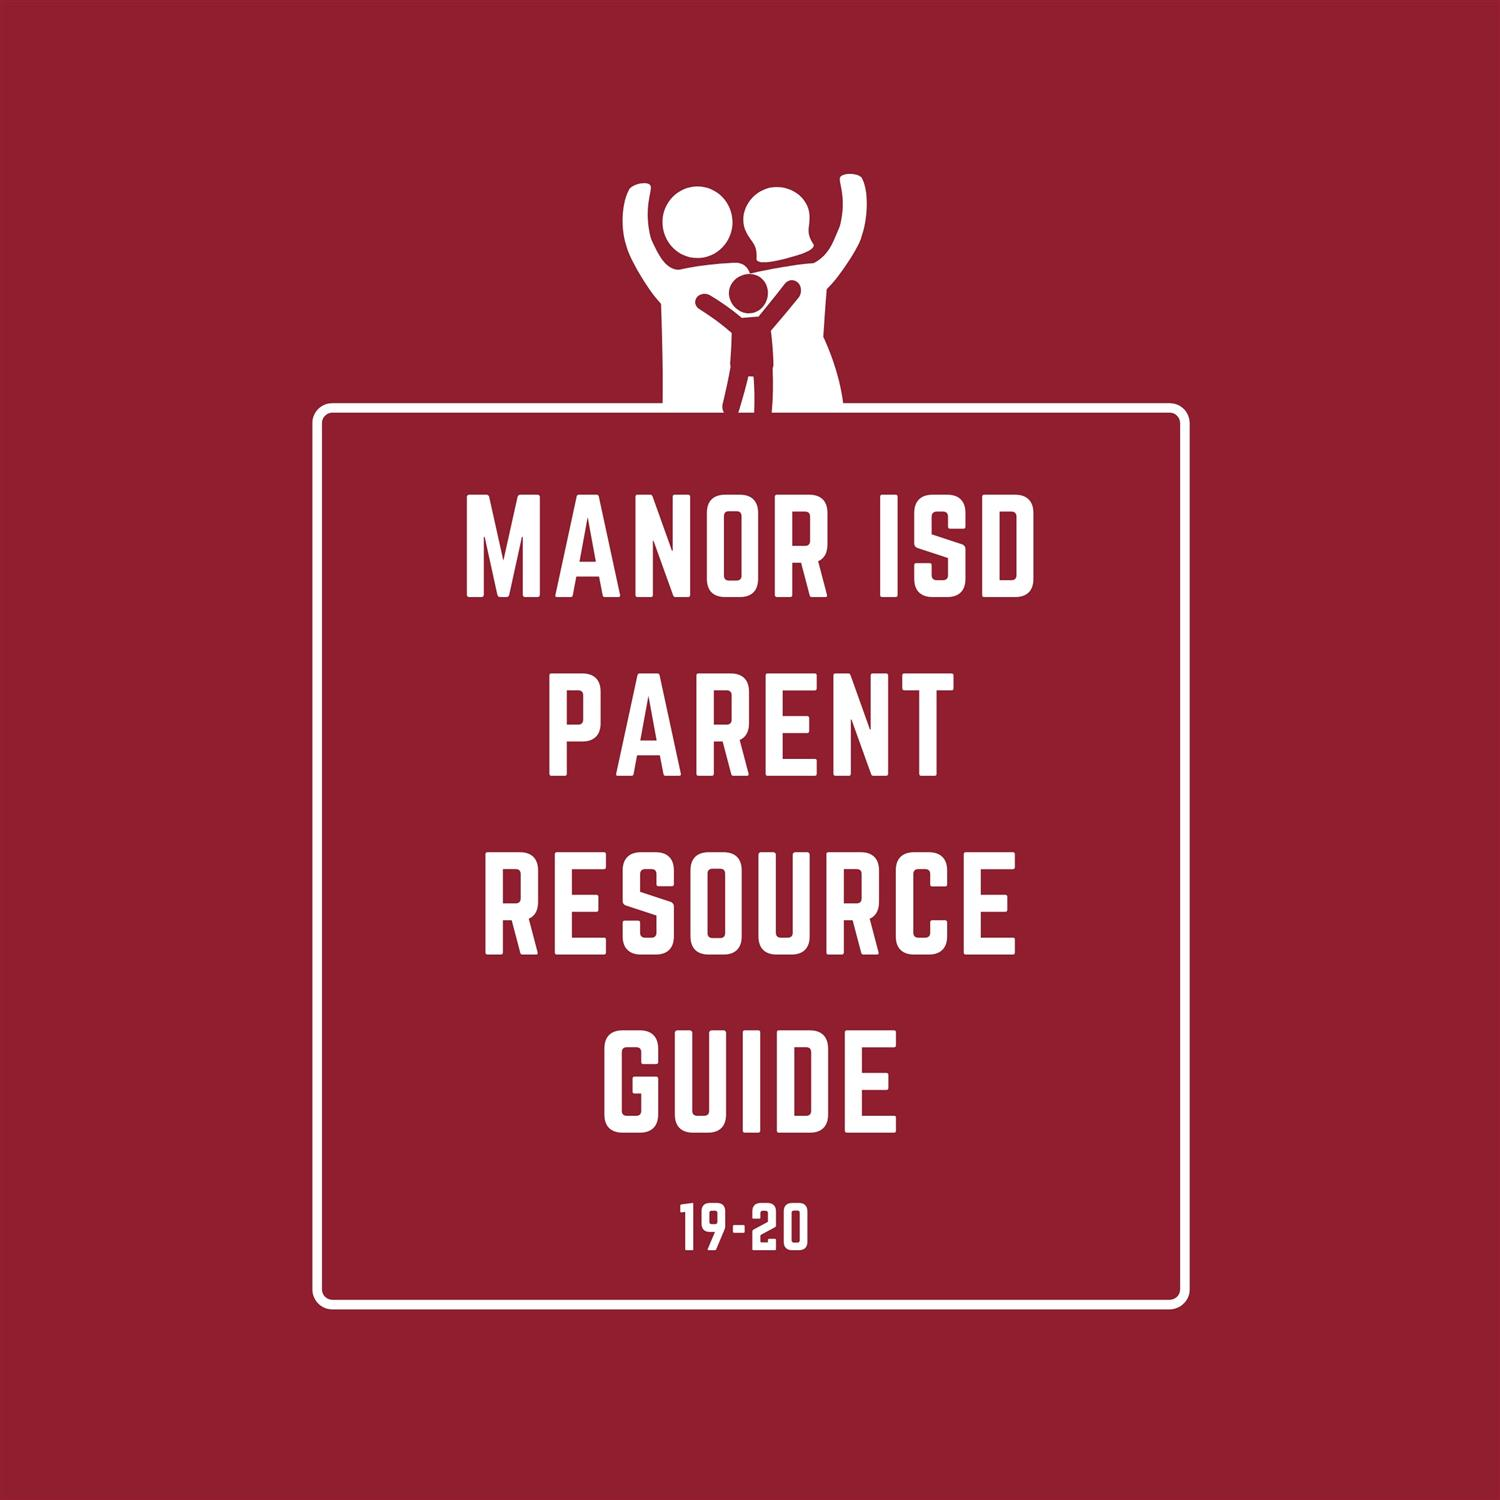 Manor ISD Parent Resource Guide 19-20